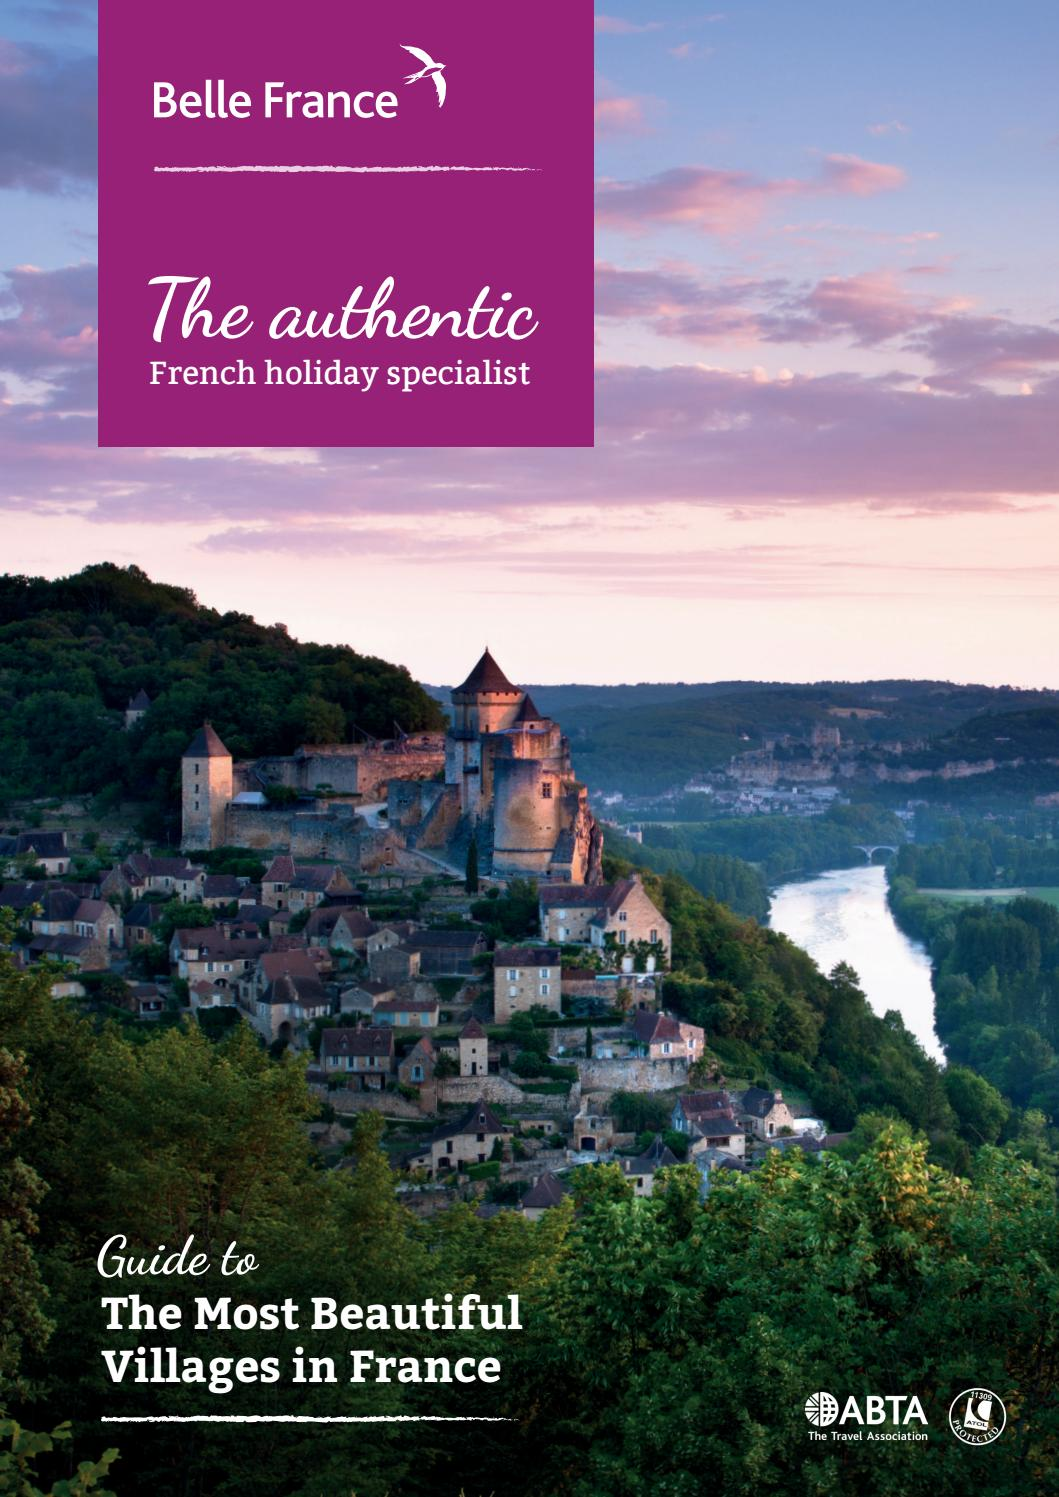 Cave A Vin Royan belle france guide to the most beautiful villages in france